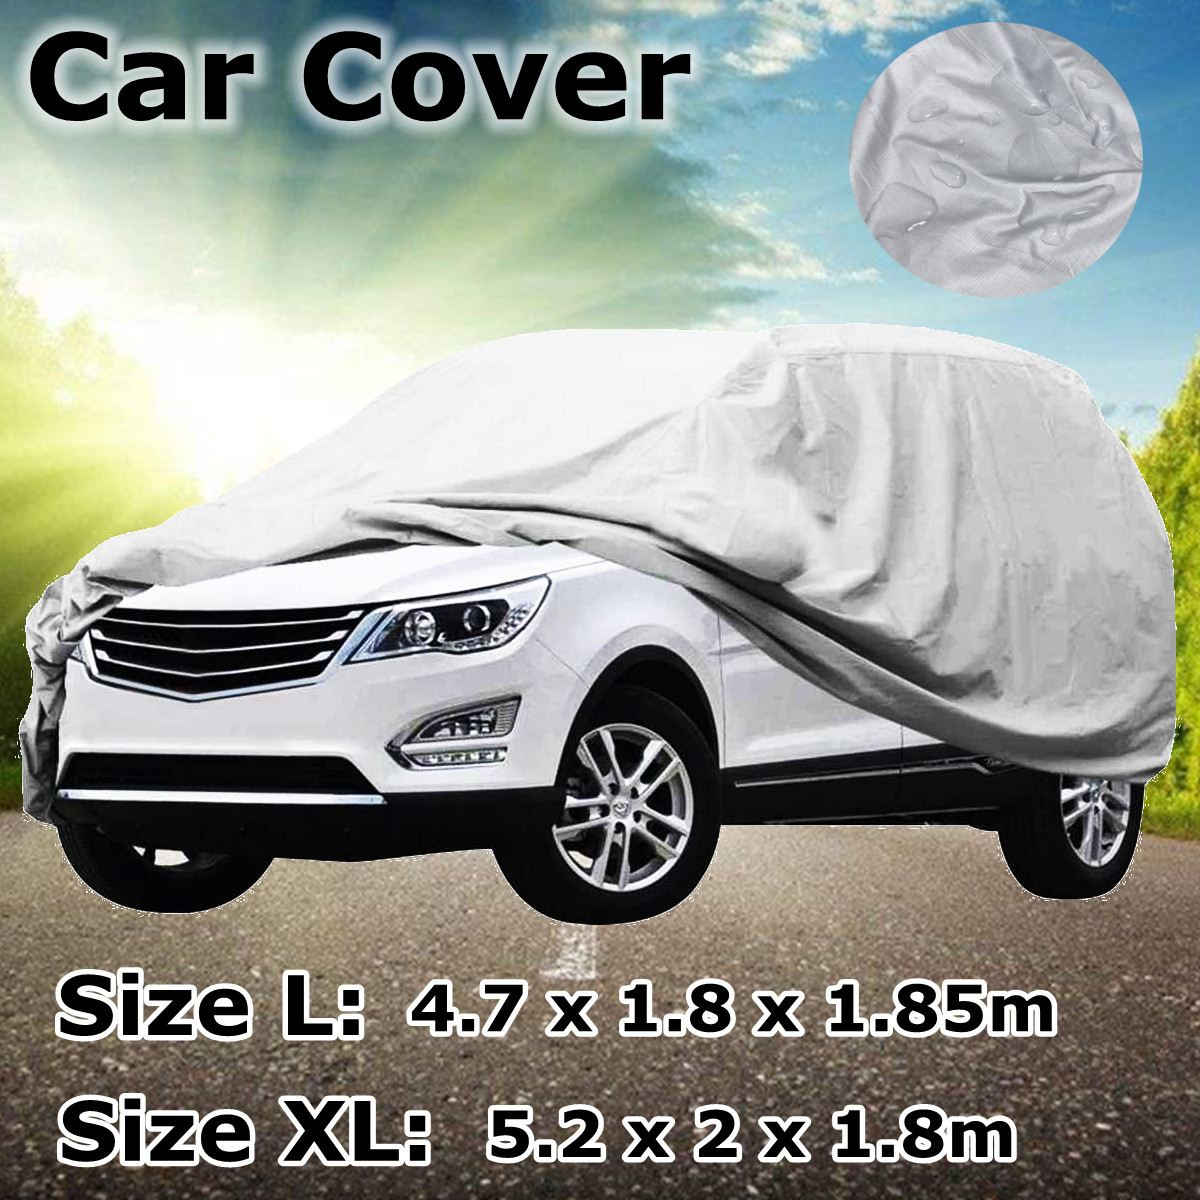 Car Cover L/XL Size SUV Full Car Covers Snow Ice Sun Rain Resistant Protection Waterproof Dustproof Outdoor Indoor image